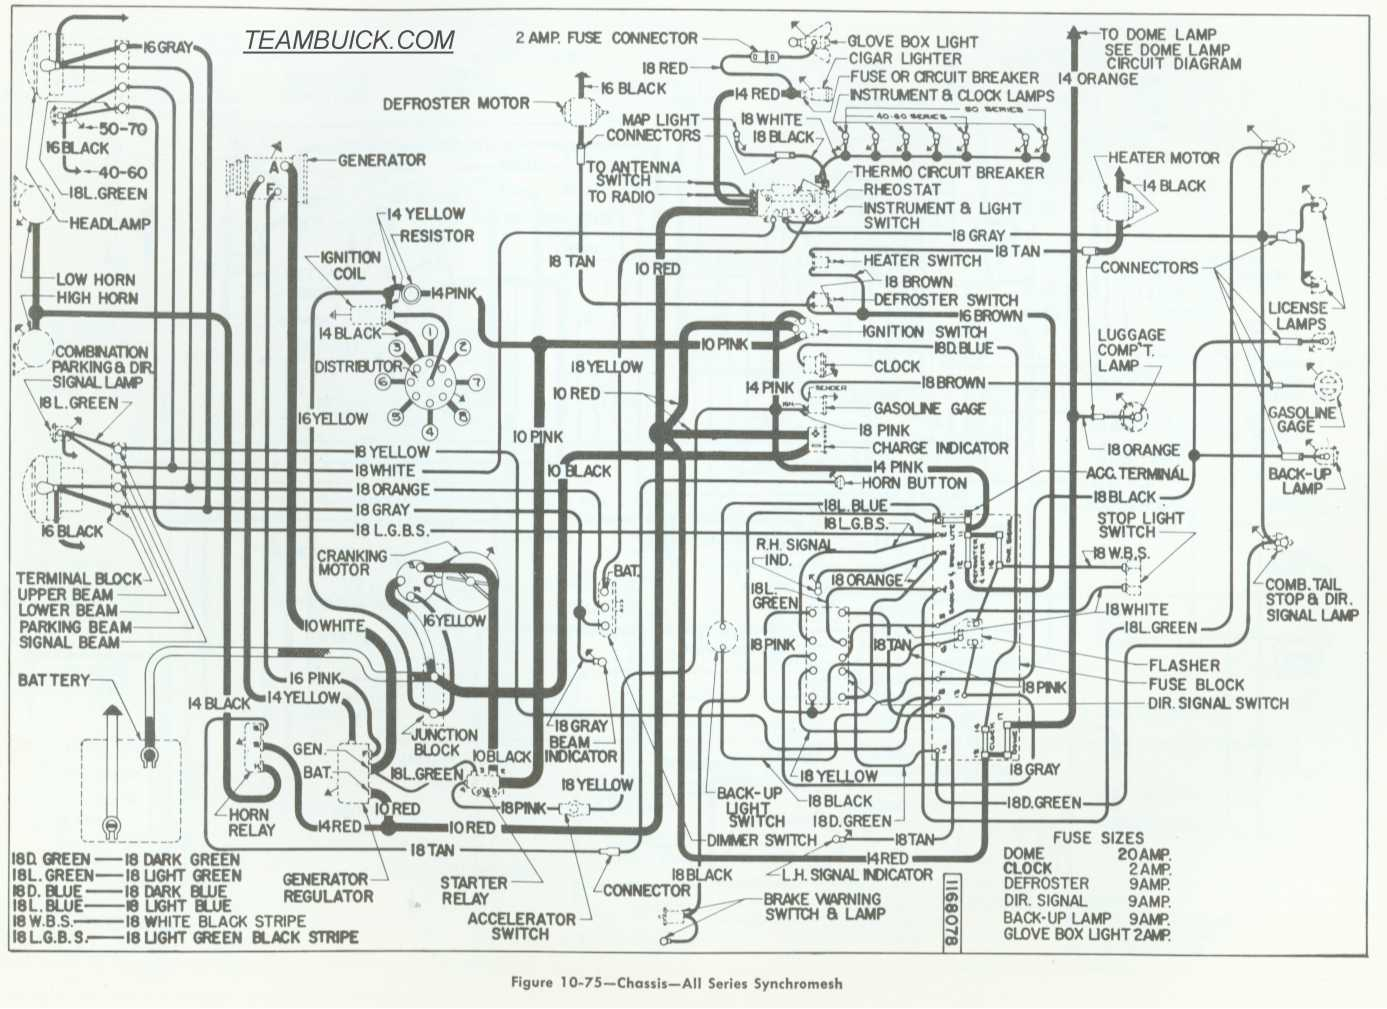 1955 buick wiring diagrams 1955 buick wiring diagrams hometown buick